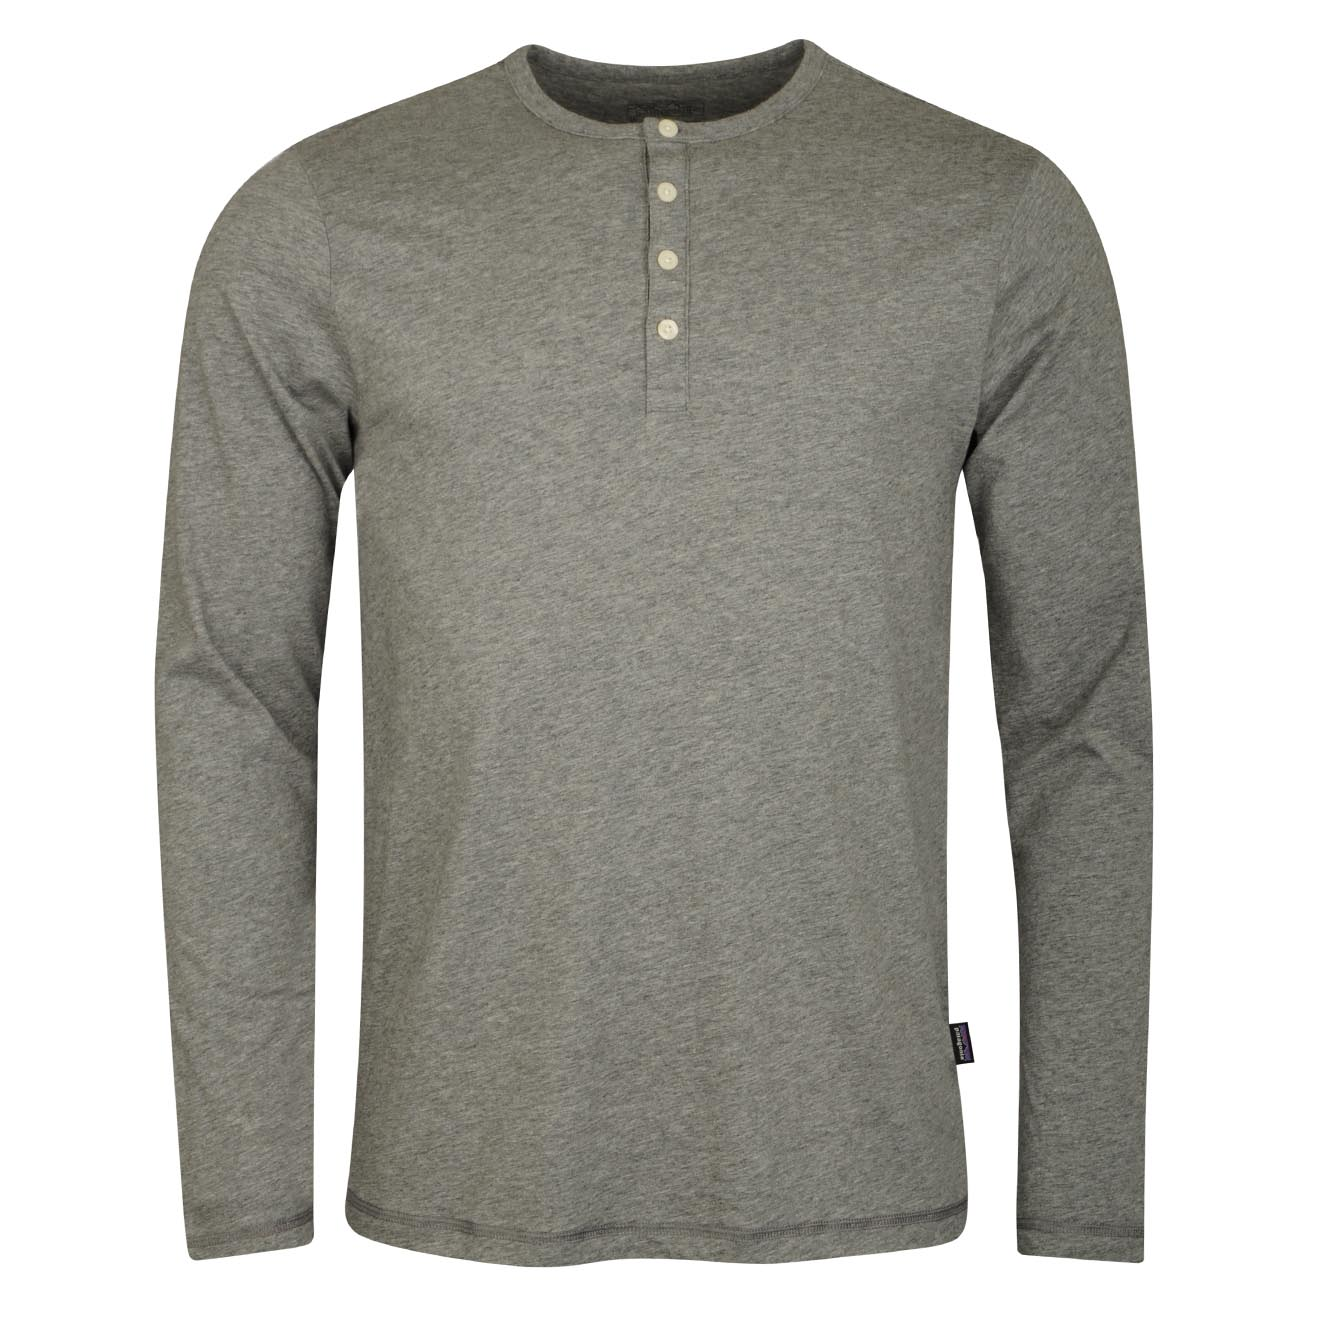 7c1791a129b Patagonia Long Sleeve Daily Henley T-Shirt Feather Grey - The ...